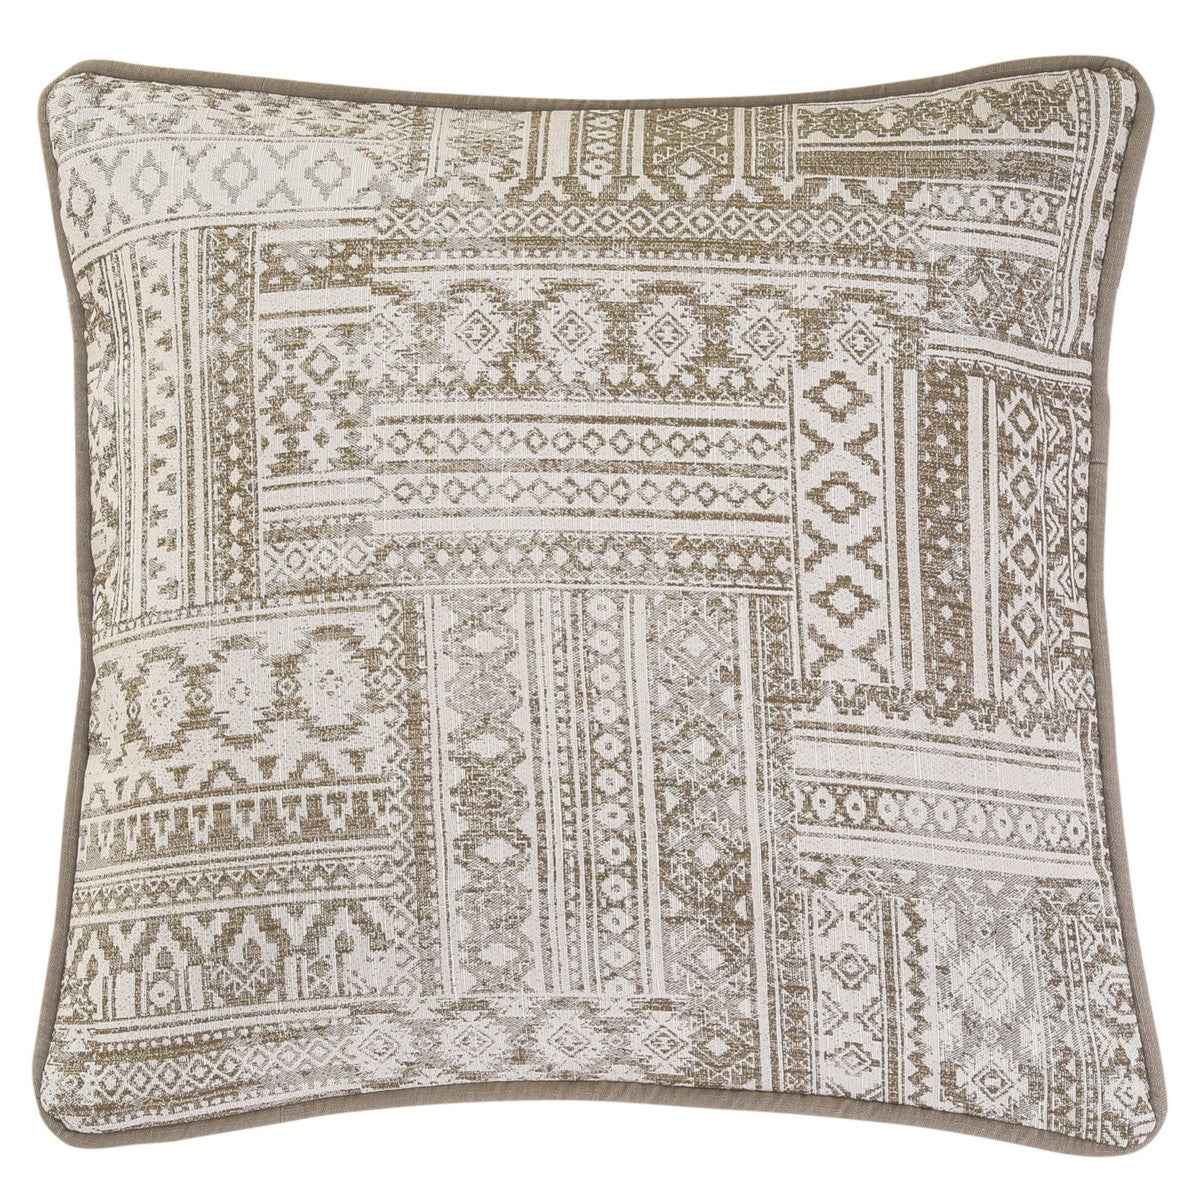 "HiEnd Accents Trent Aztec Patchwork Pillow - 20"" x 20"""